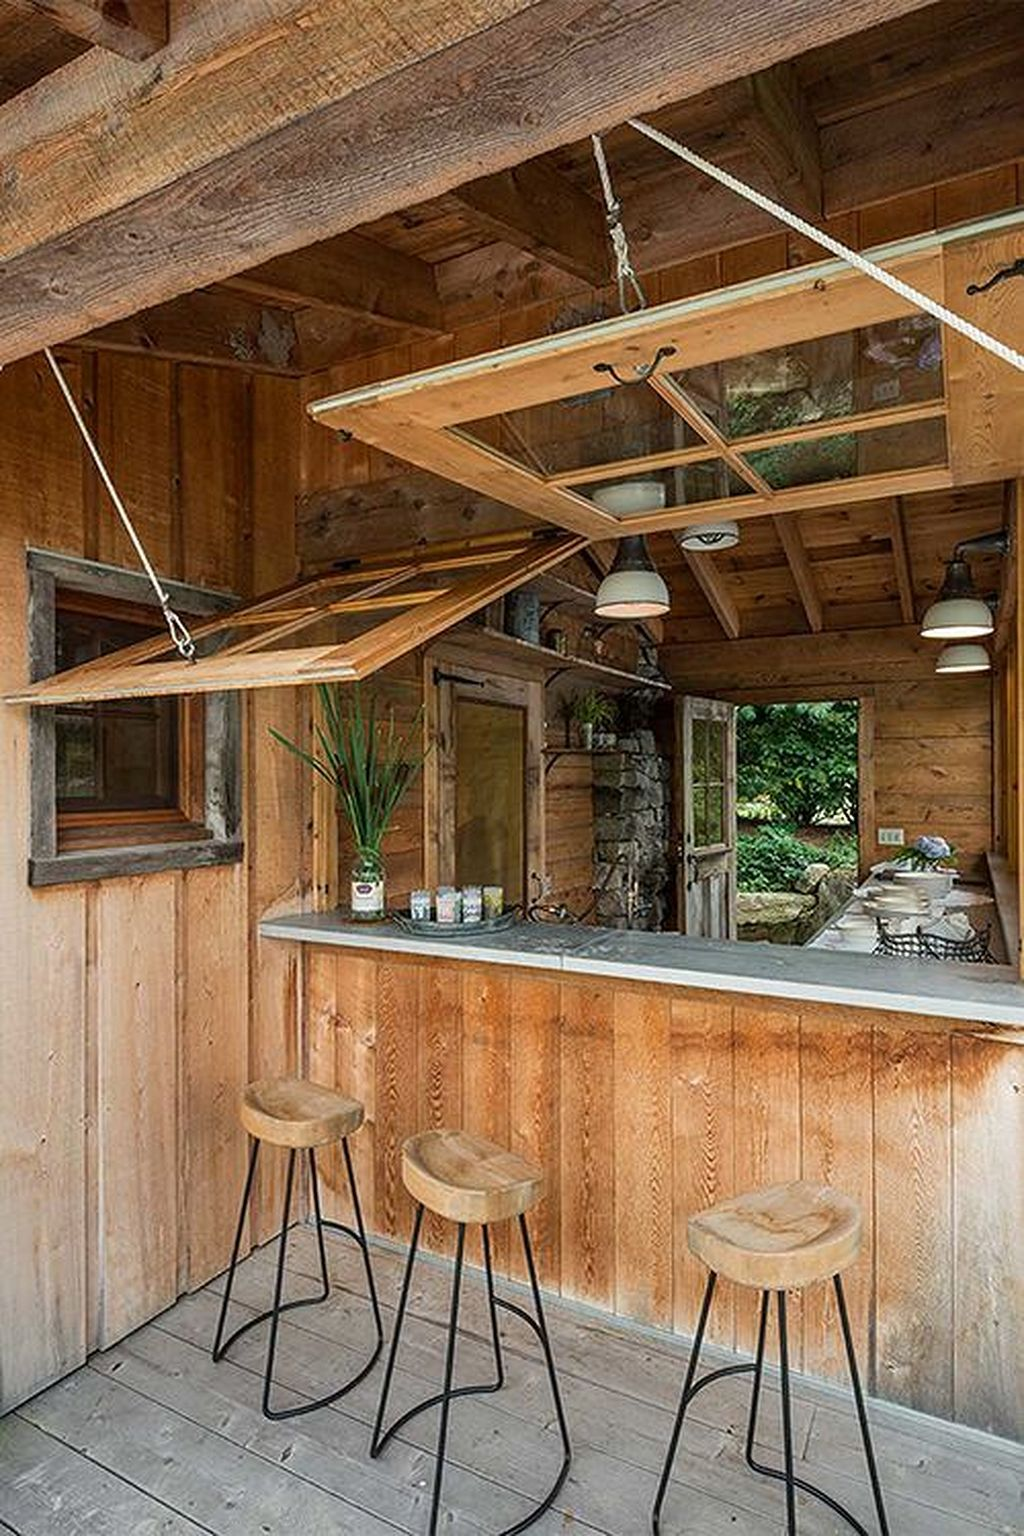 Bon 20+ Creative Outdoor Bar Ideas You Must Try At Your Backyard